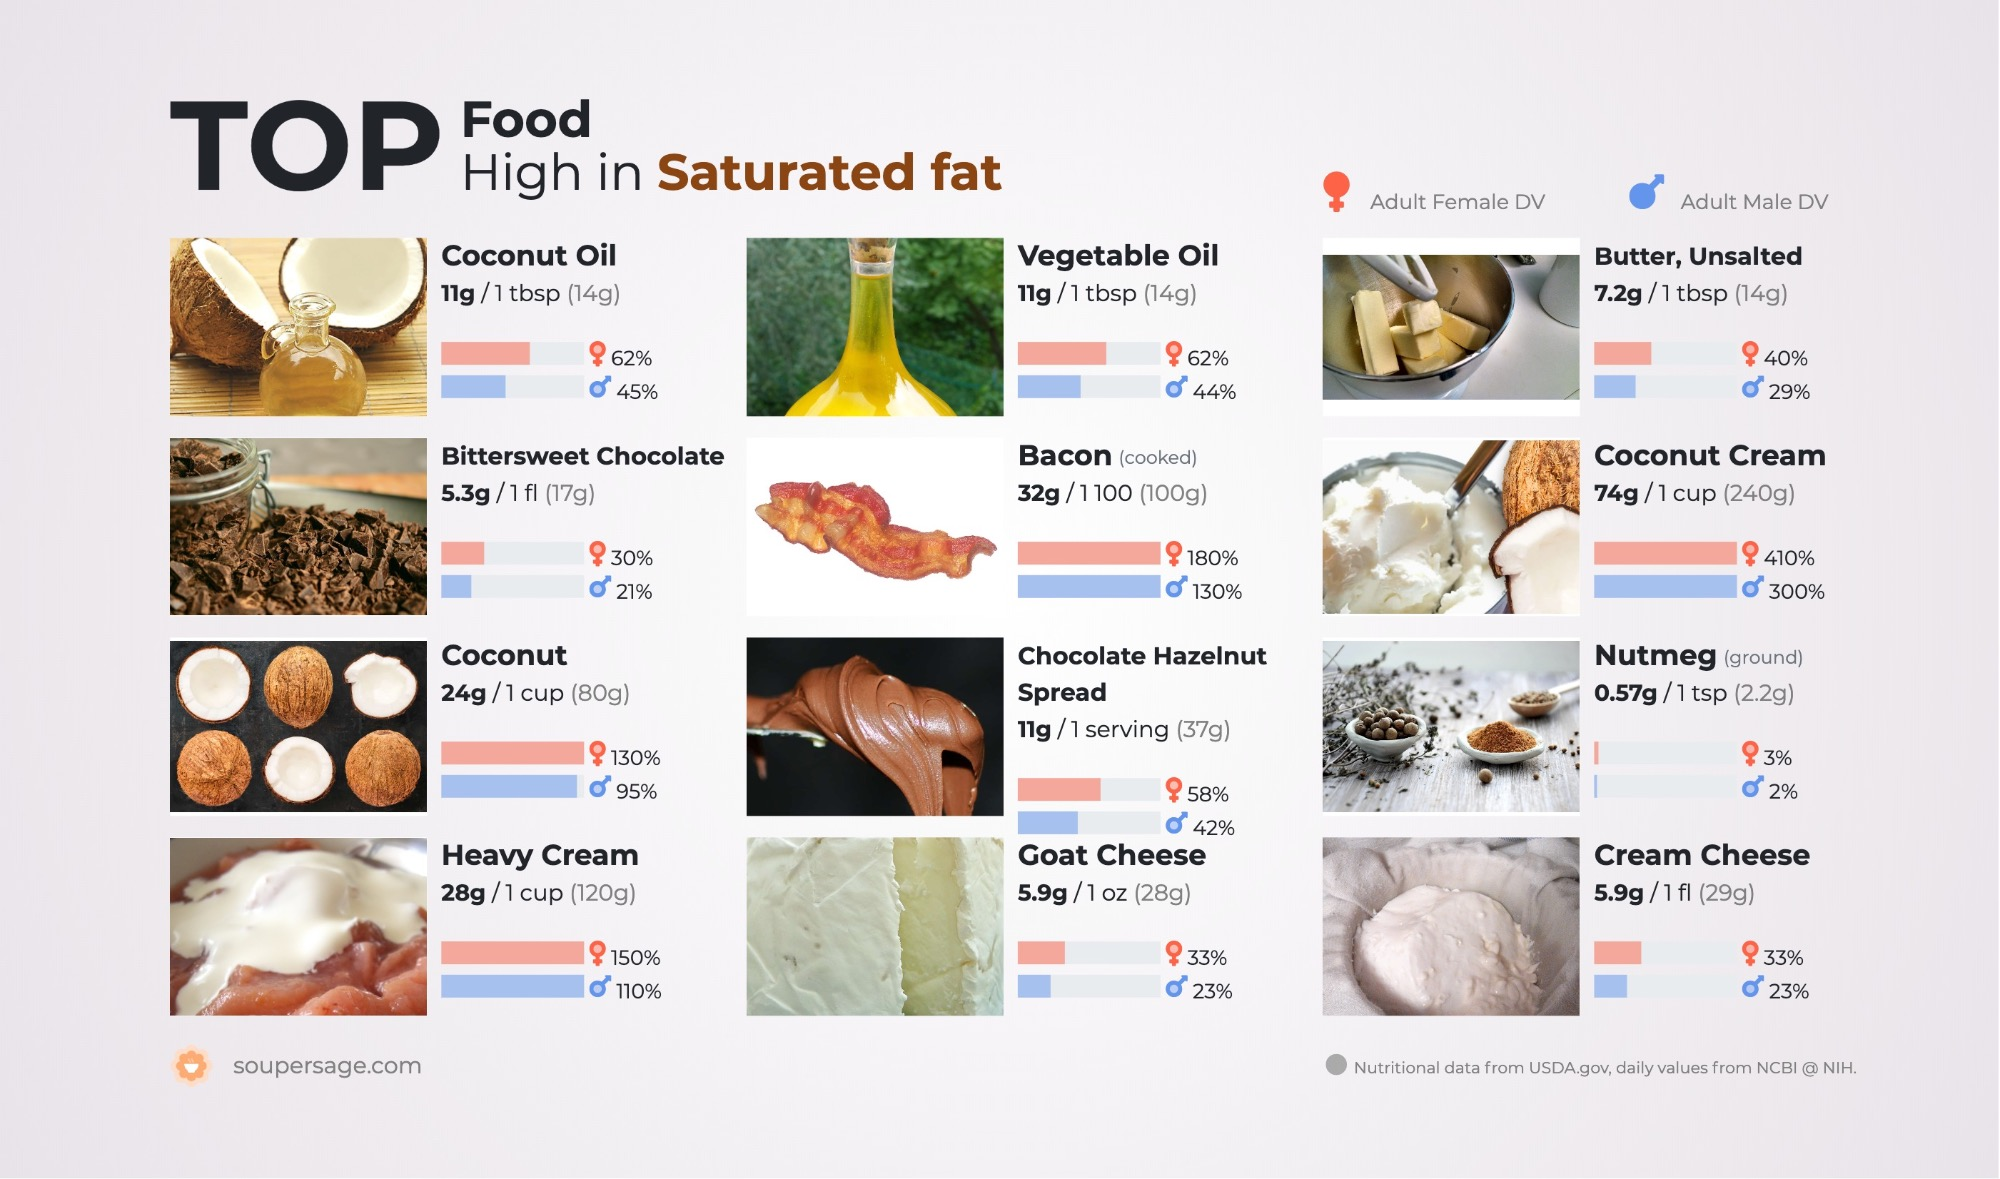 image of Top Food High in Saturated fat